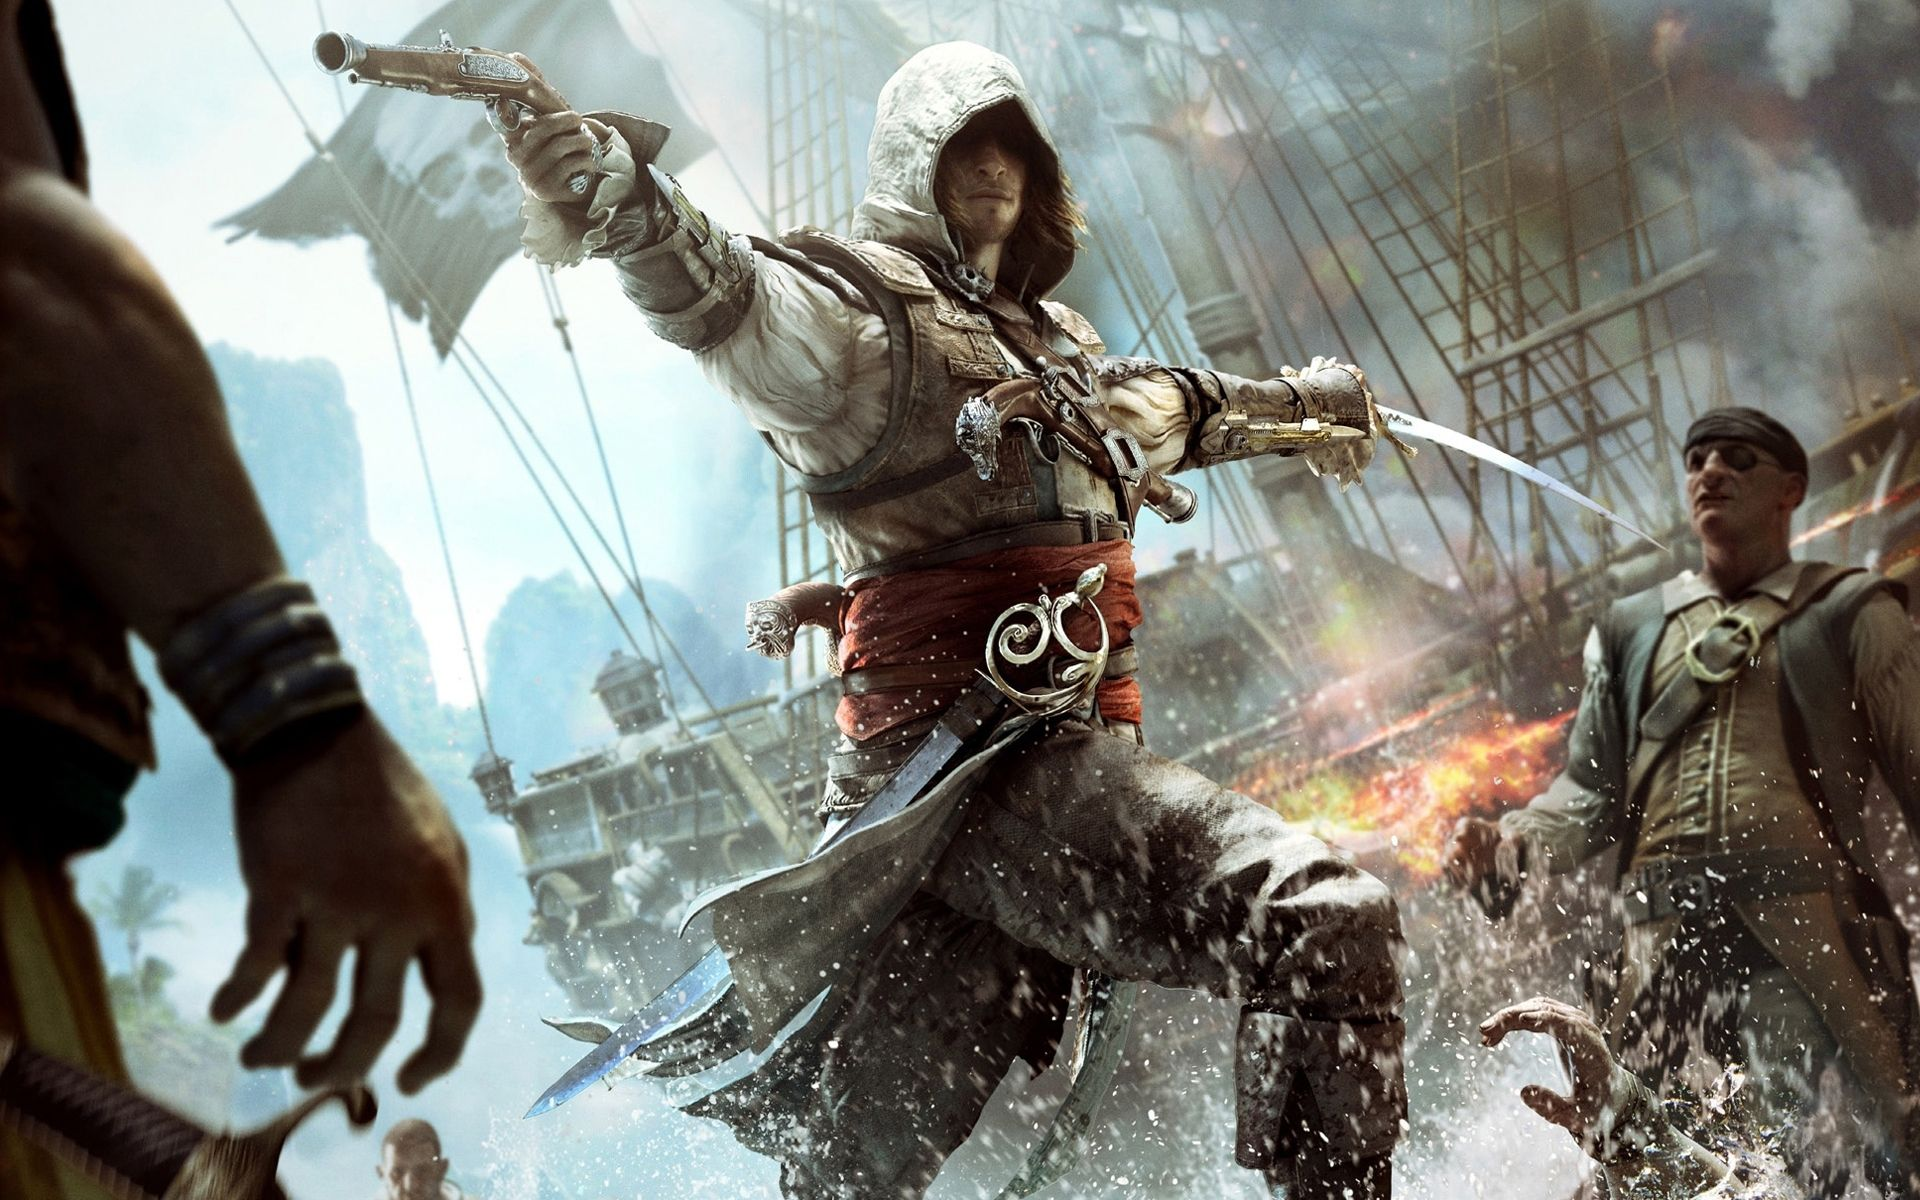 10 New Assassin Creed Black Flag Wallpaper Full Hd 1080p For Pc Background Assassin S Creed Black Assassins Creed Black Flag Assassins Creed 4